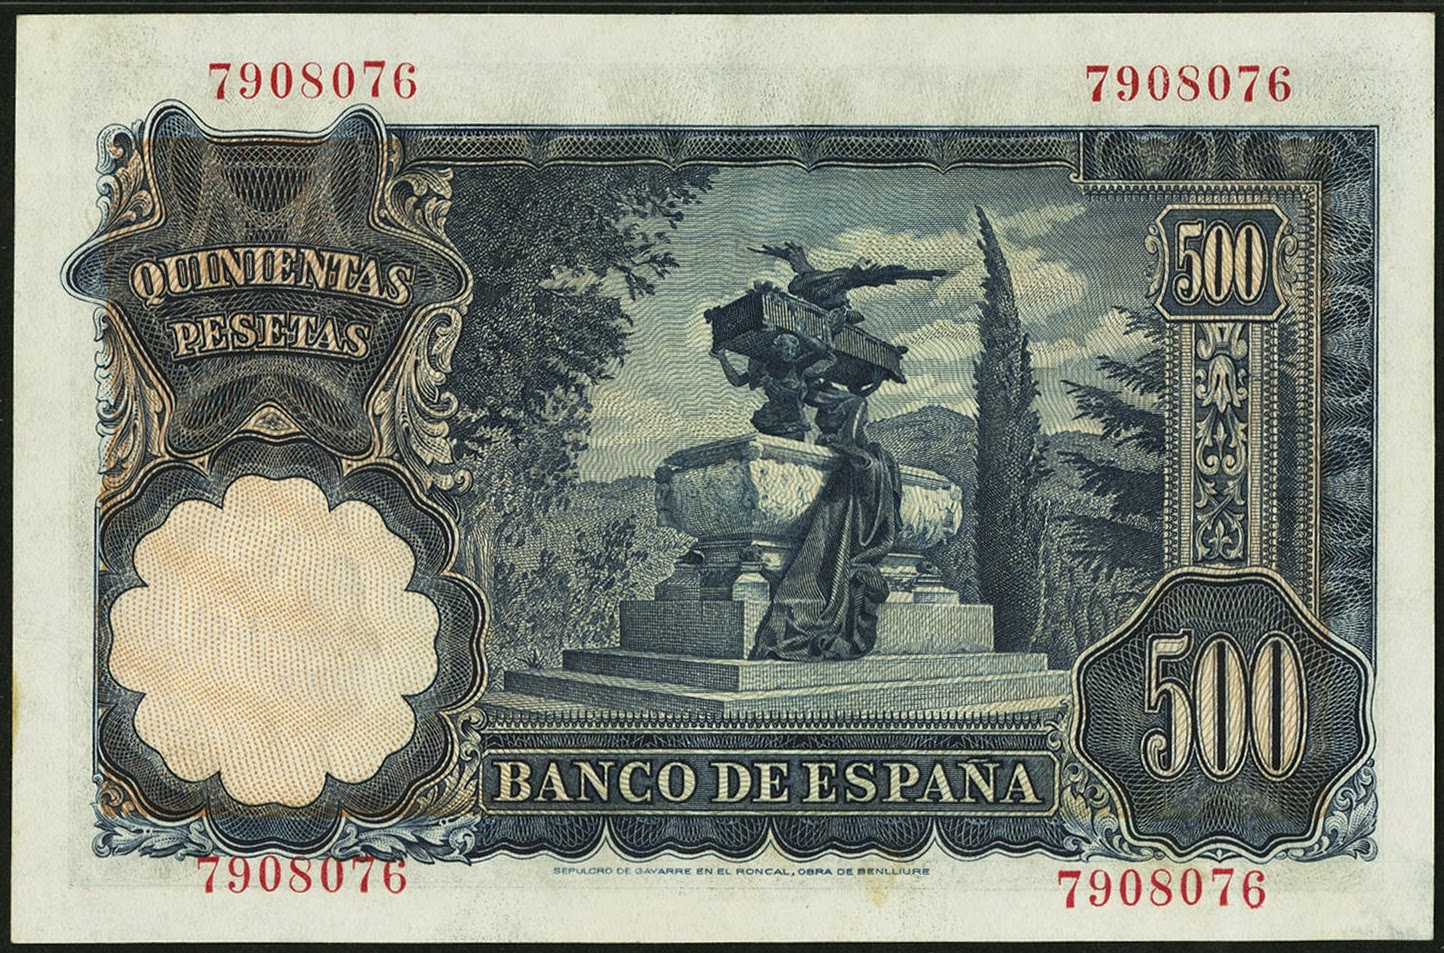 Spain Banknotes 500 Pesetas banknote 1951 Julián Gayarre Mausoleum in bronze sculpted by Mariano Benlliure